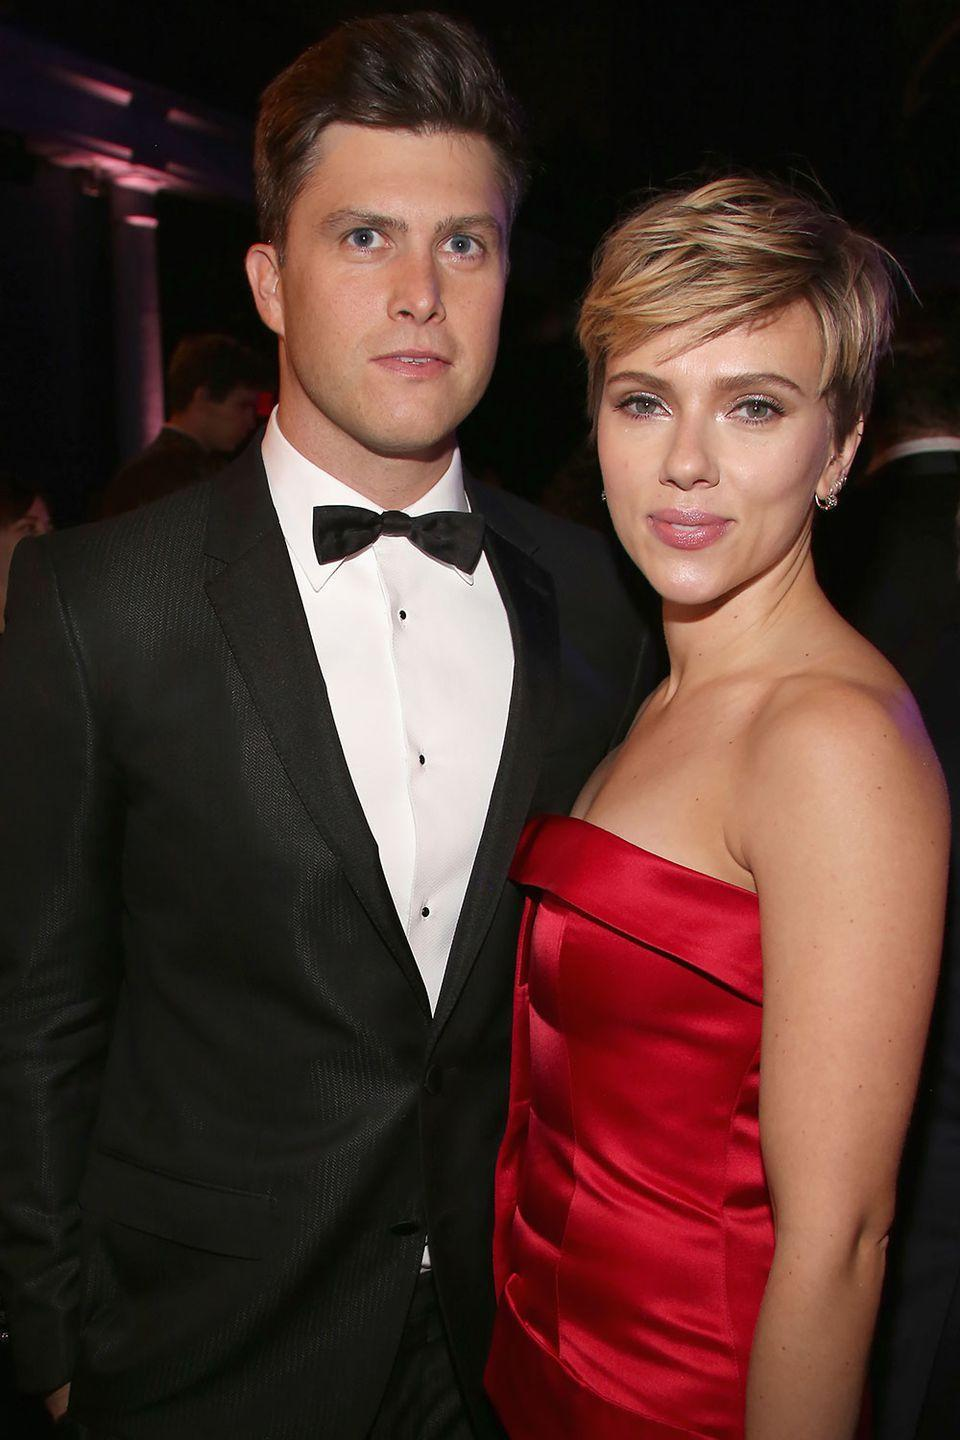 <p>Rumors that this couple were dating started in 2017. Maybe it's the whole looking alike thing that first sparked their interest.</p>